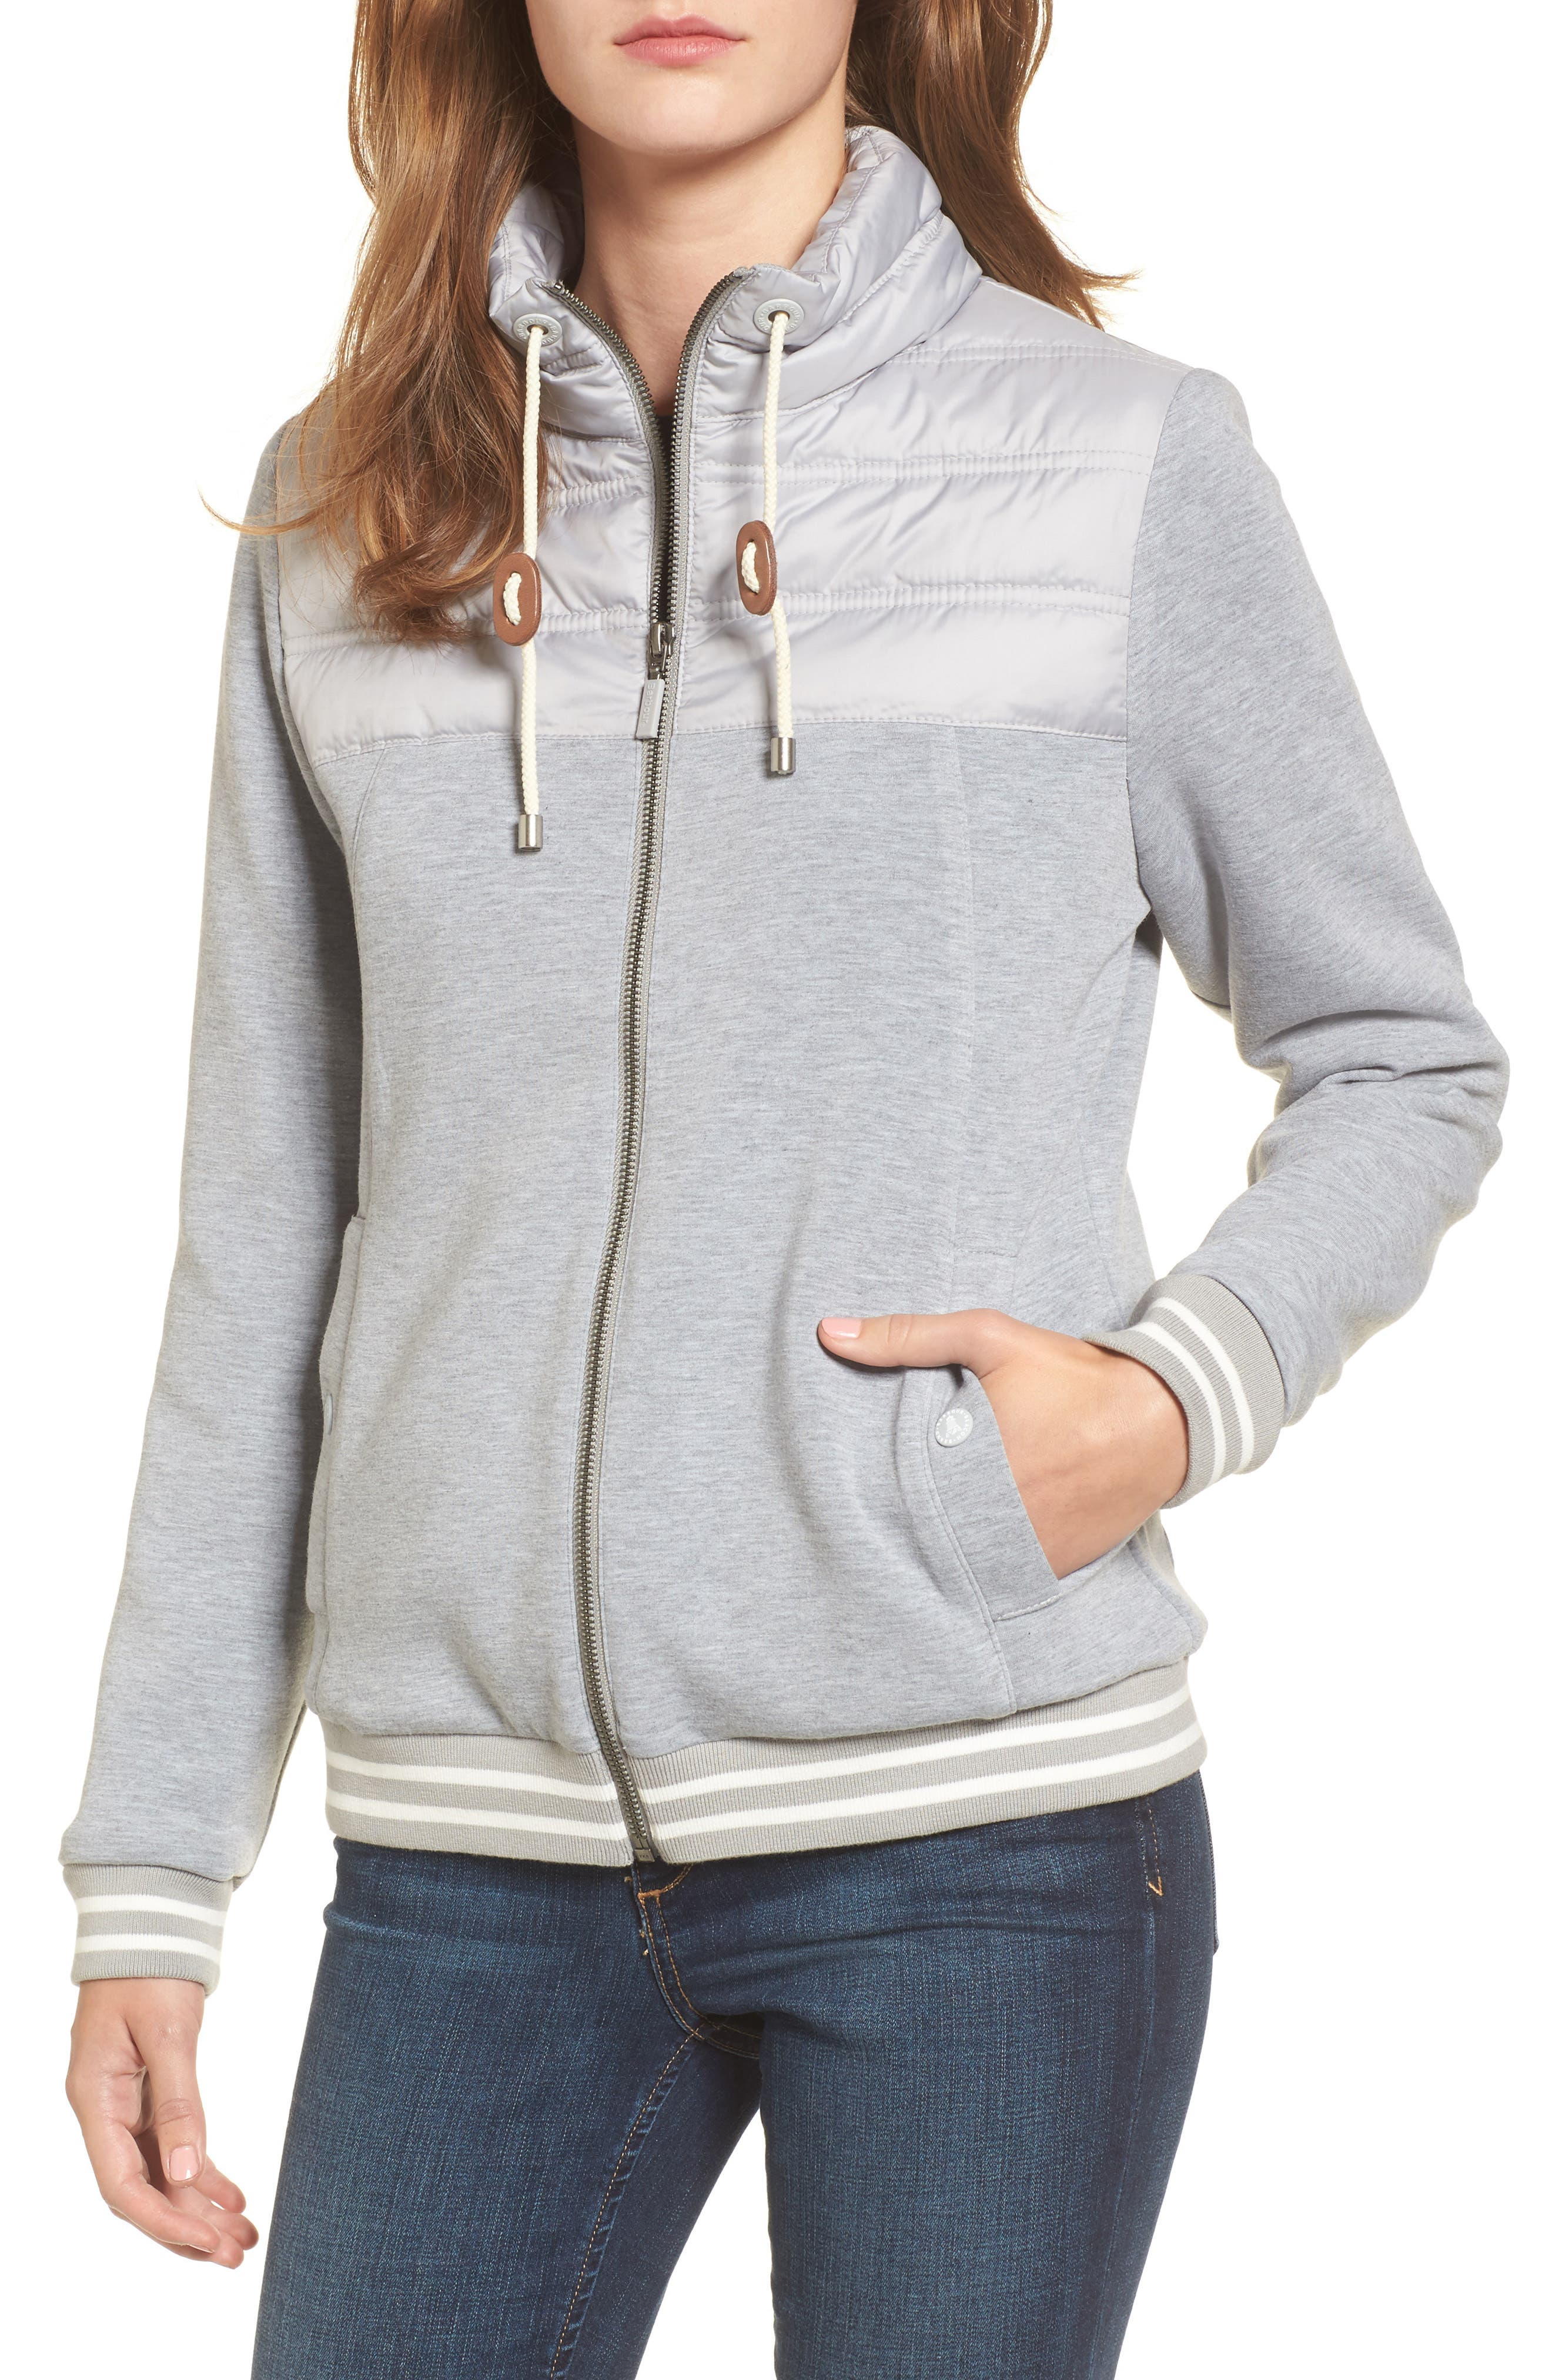 Selsey Zip Sweater,                             Main thumbnail 1, color,                             050